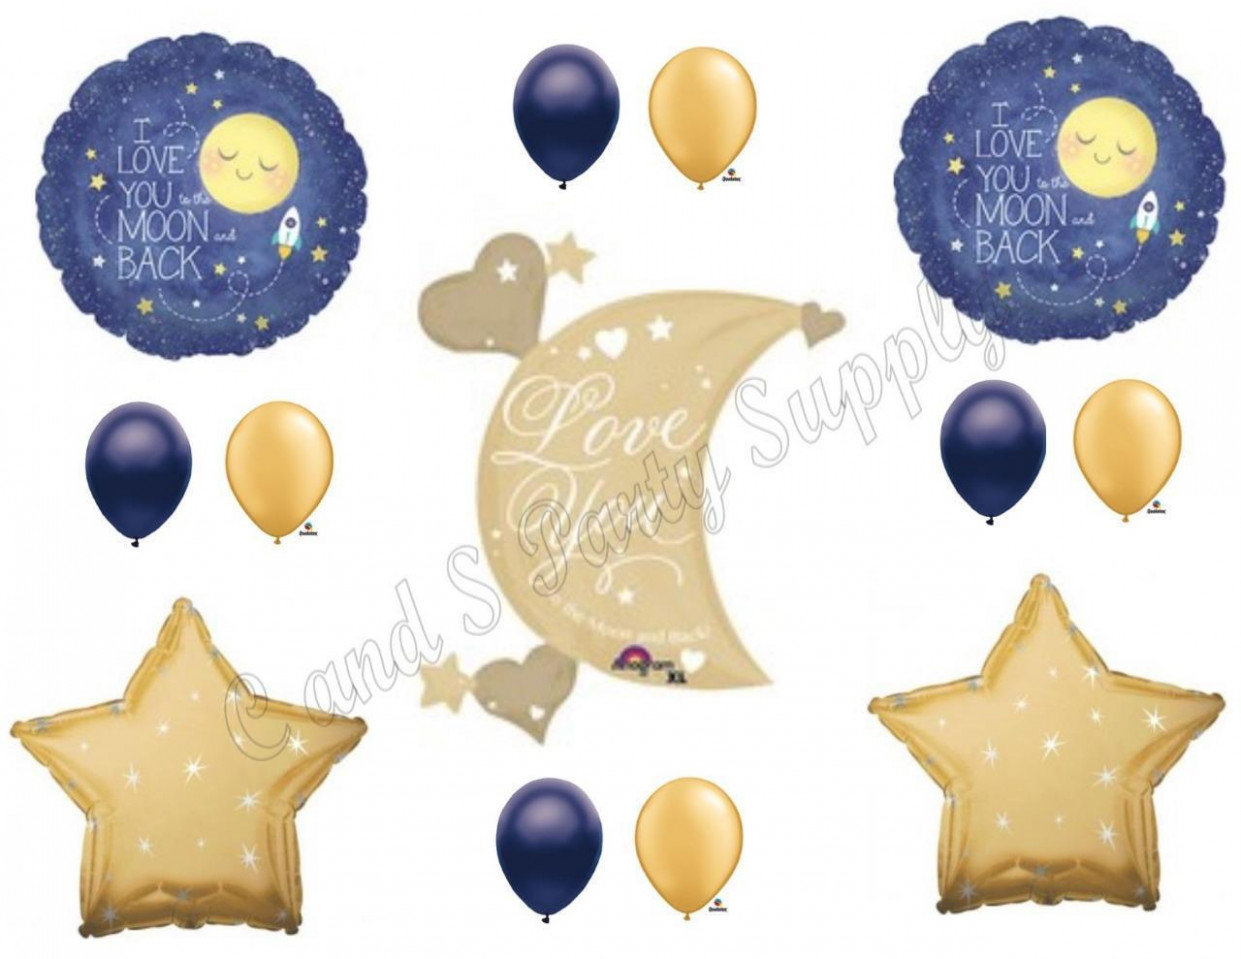 XL LOVE YOU TO MOON AND BACK Navy Gold Birthday Baby Shower Balloons Decorations Carport Decorating Xl